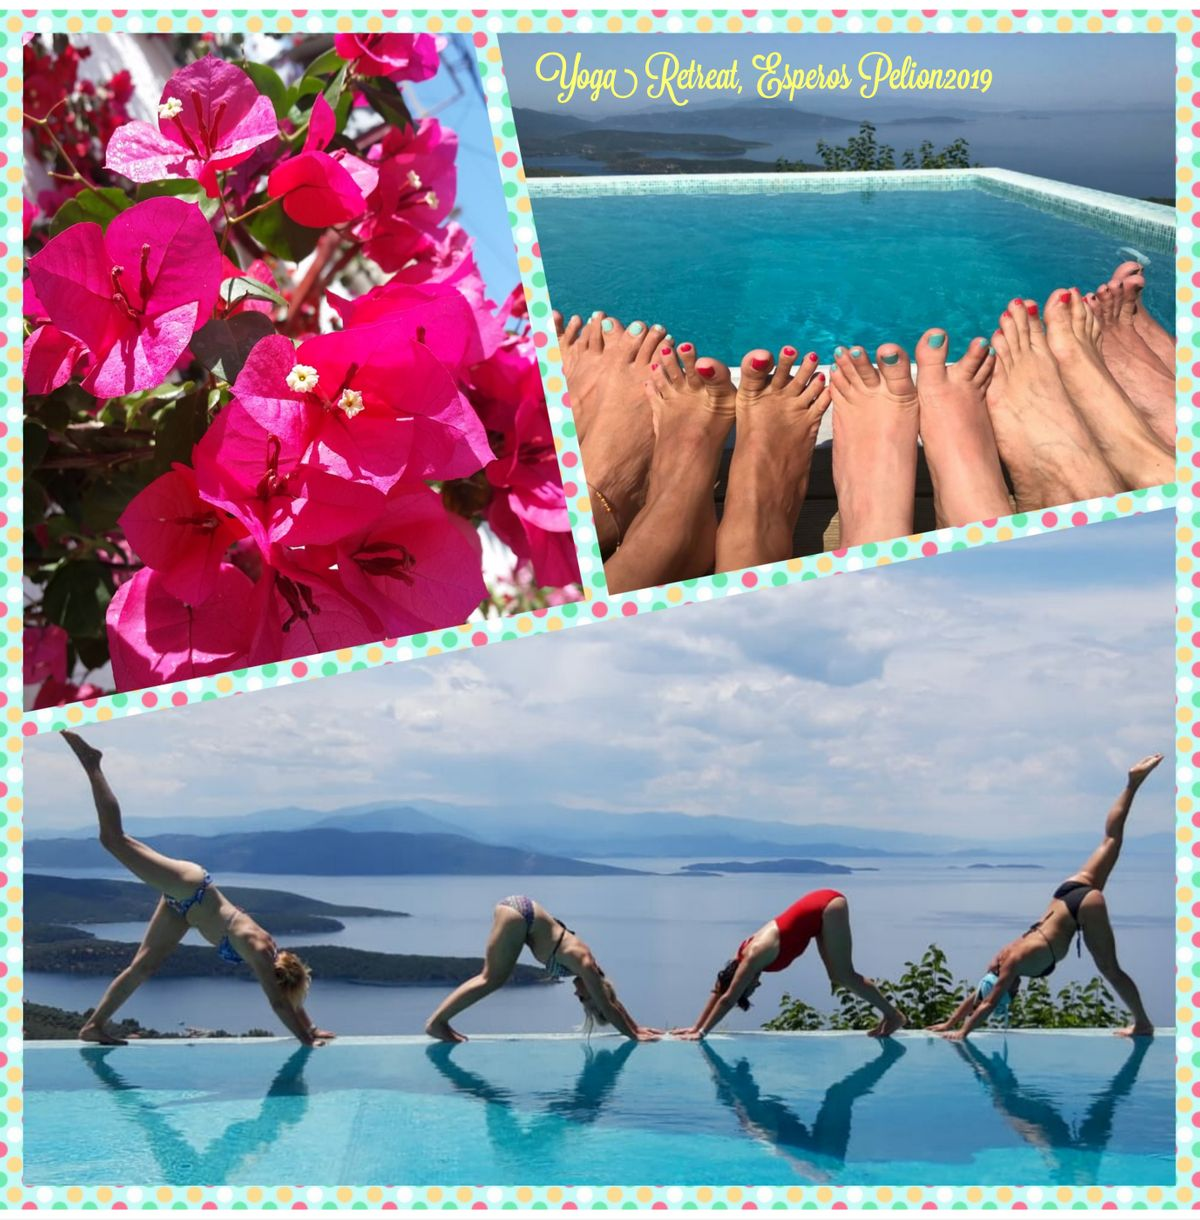 YogaRetreat Pelion 201901